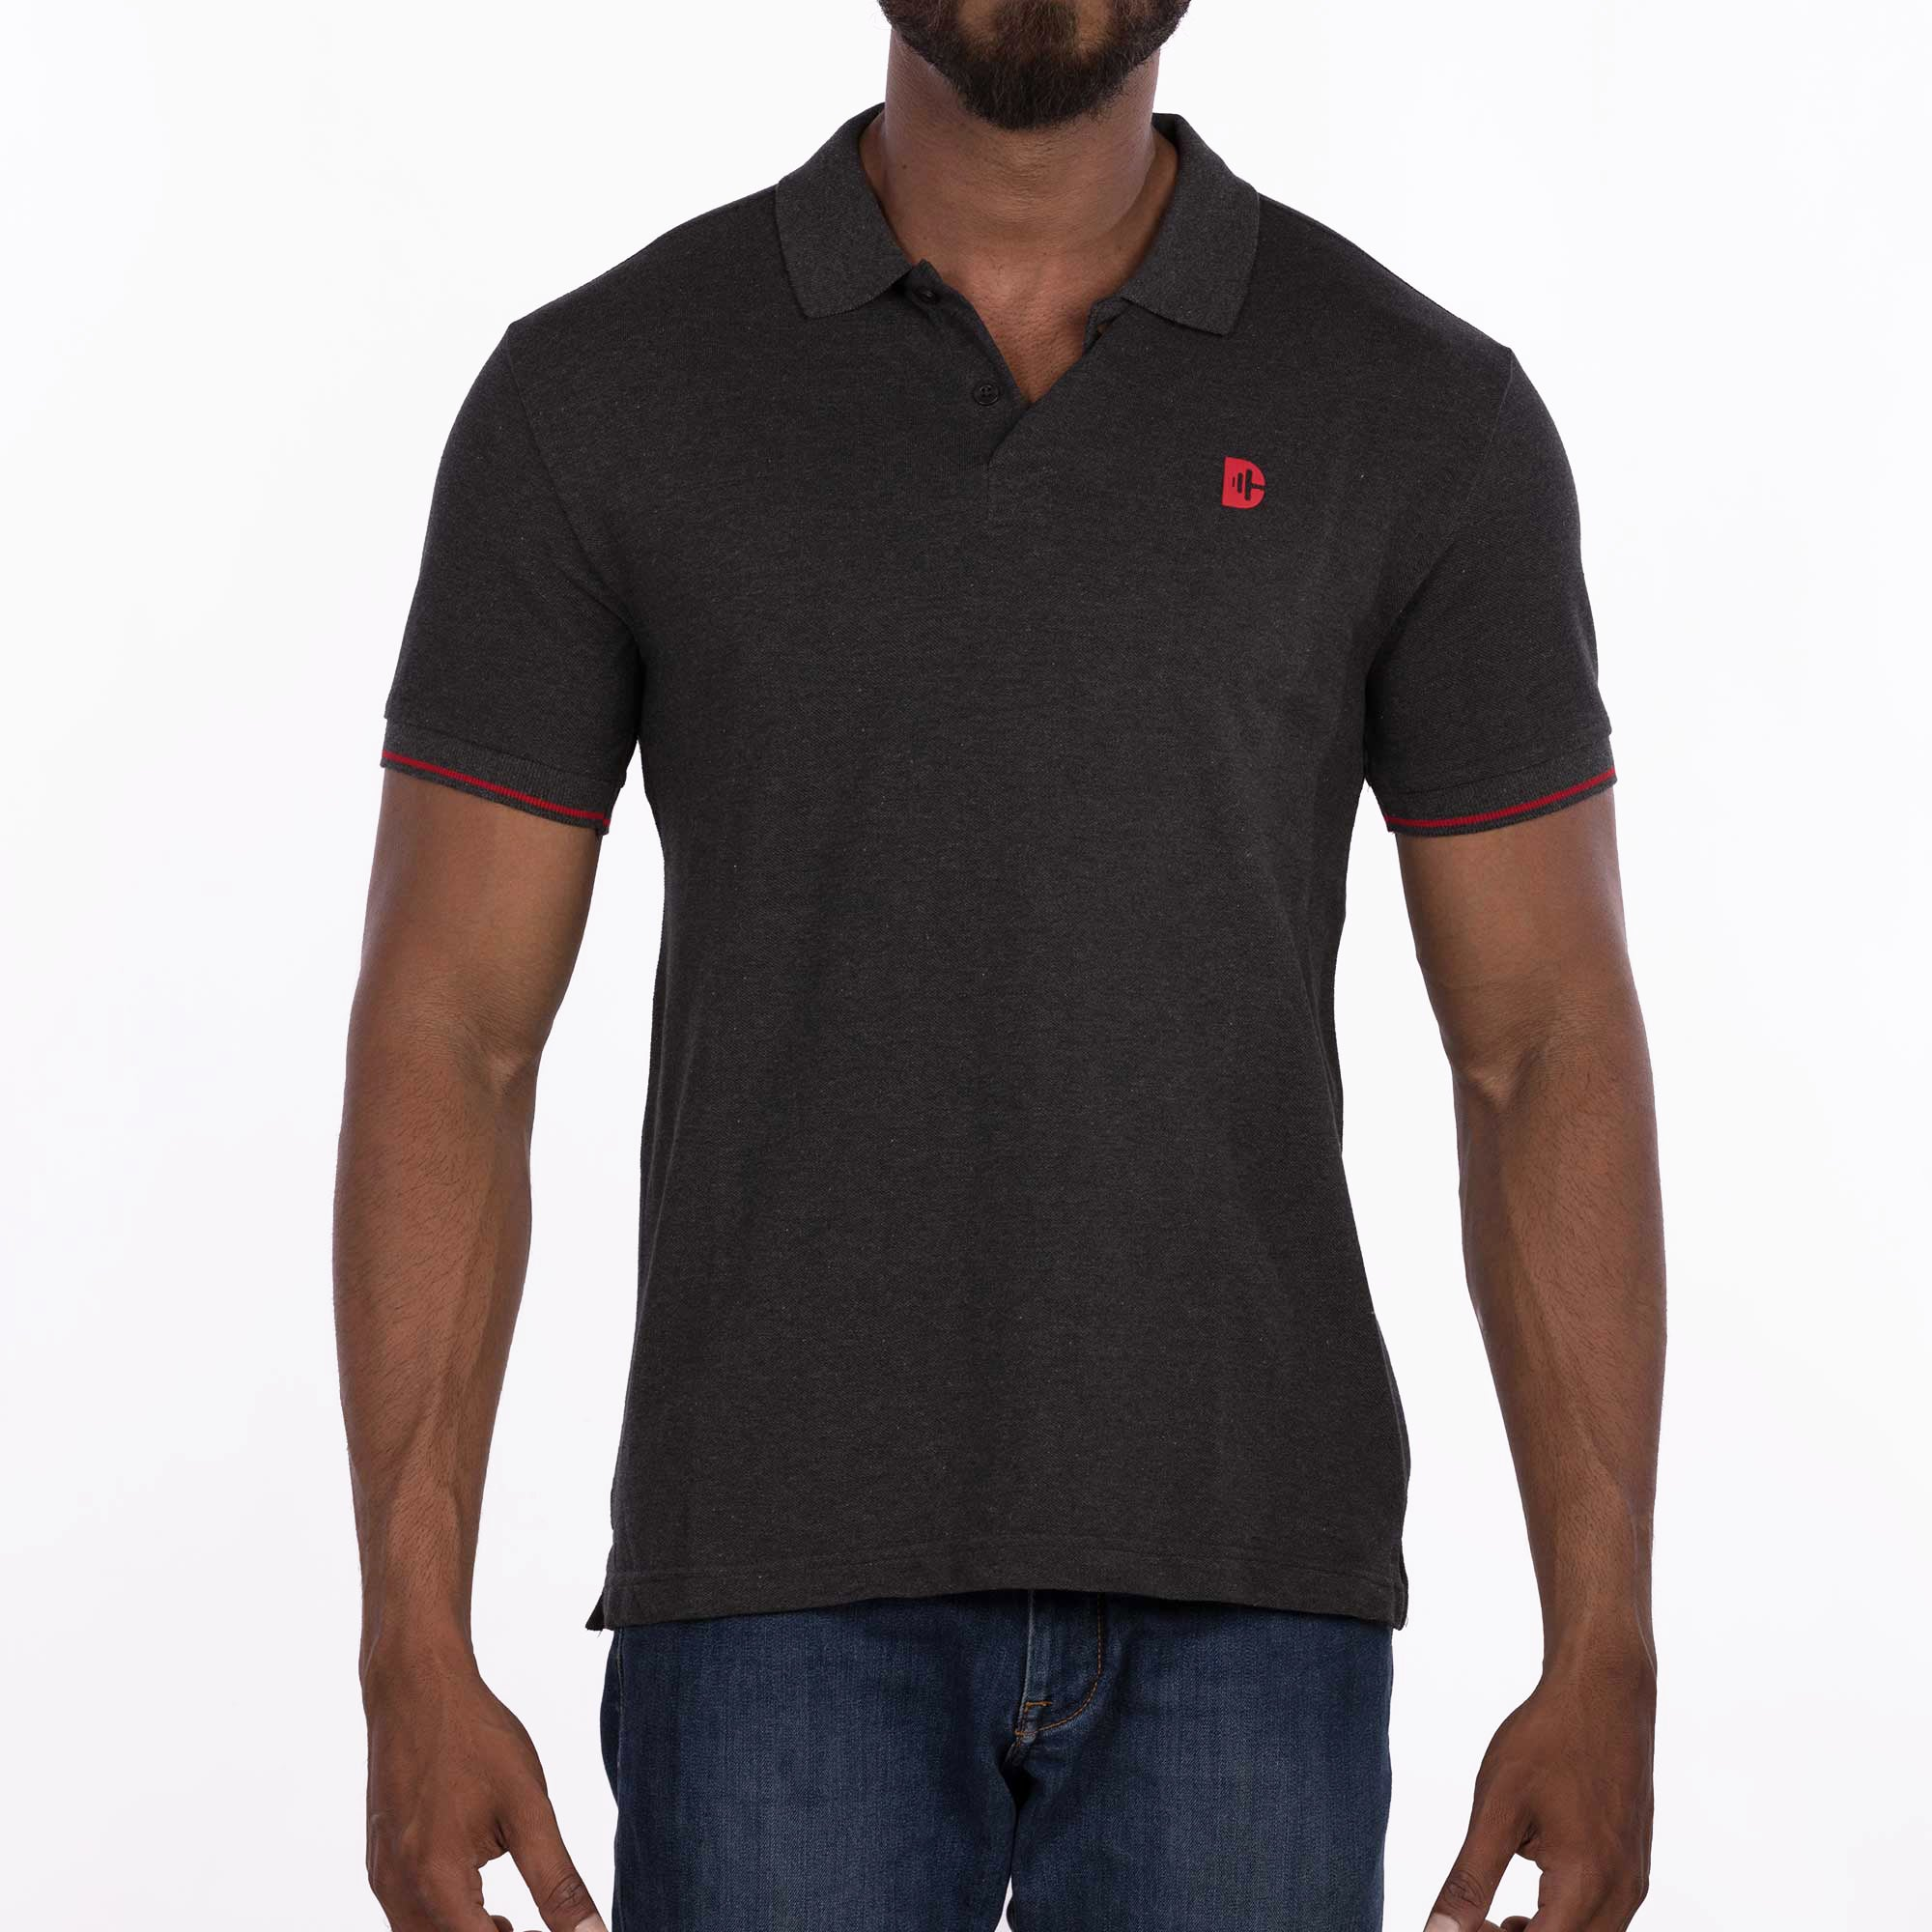 DB032 Polo - Charcoal Melange